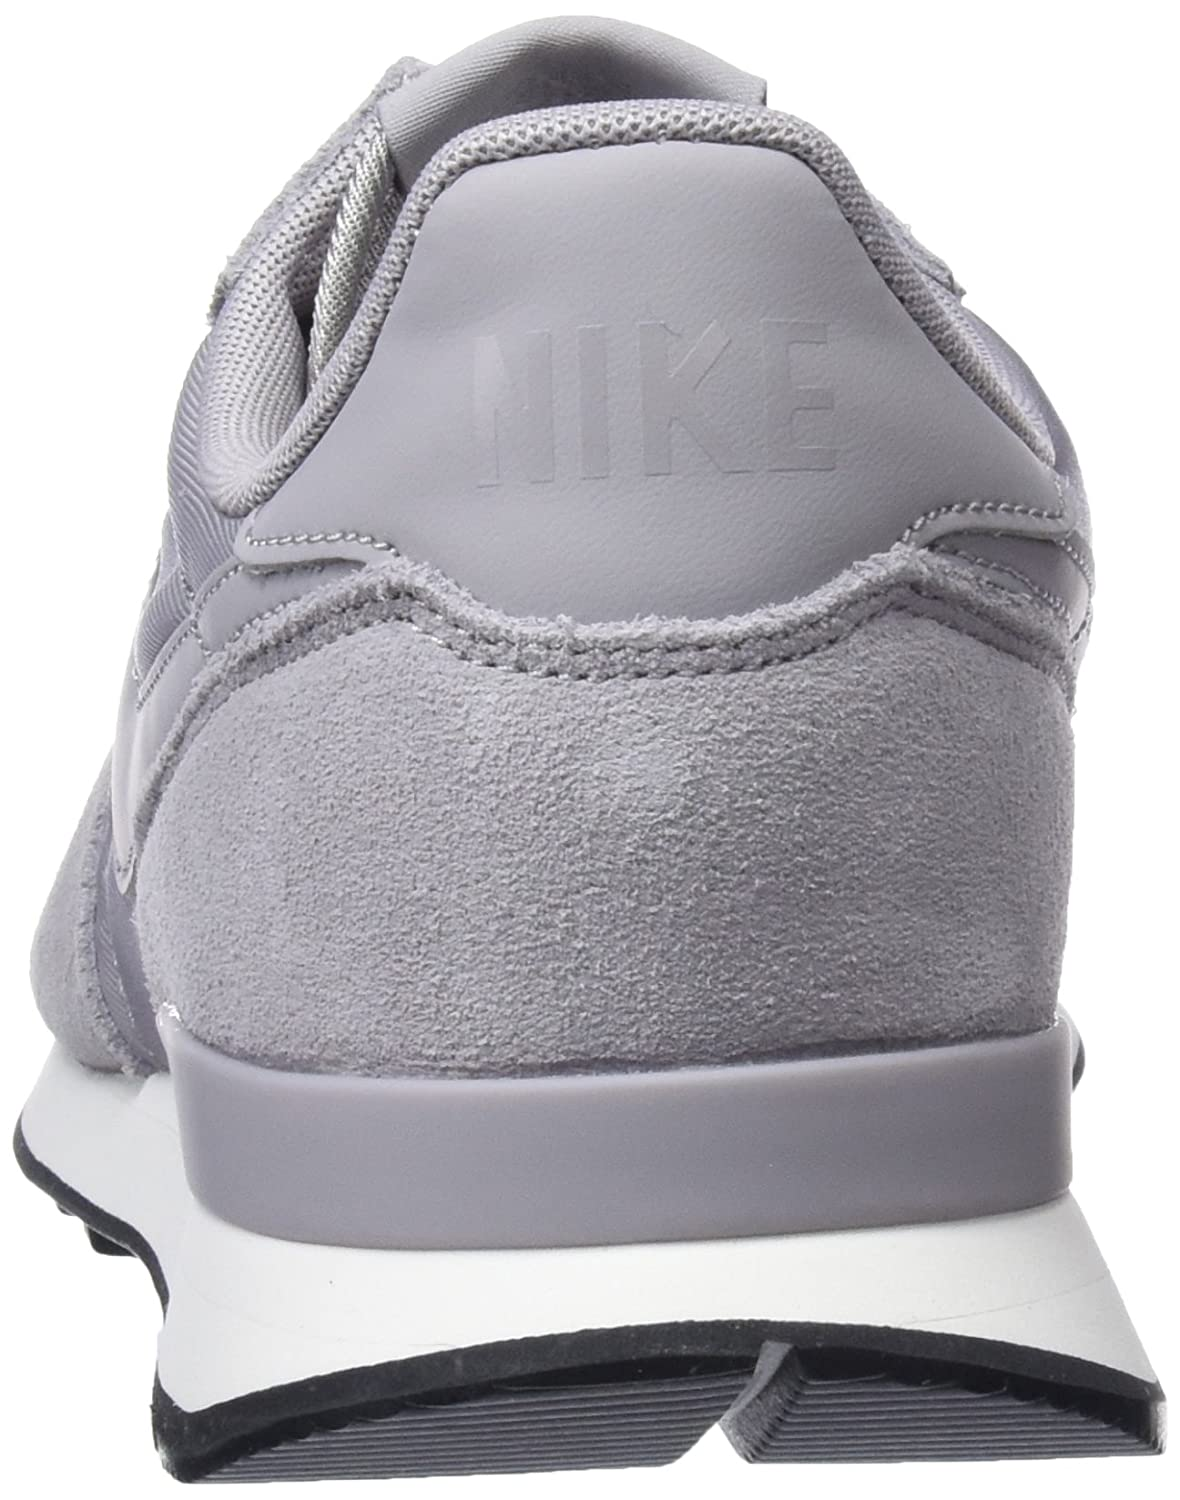 Mens Internationalist Se Gymnastics Shoes, Grey (Atmosphere Greyatmosphere Grey 001), 6 UK Nike